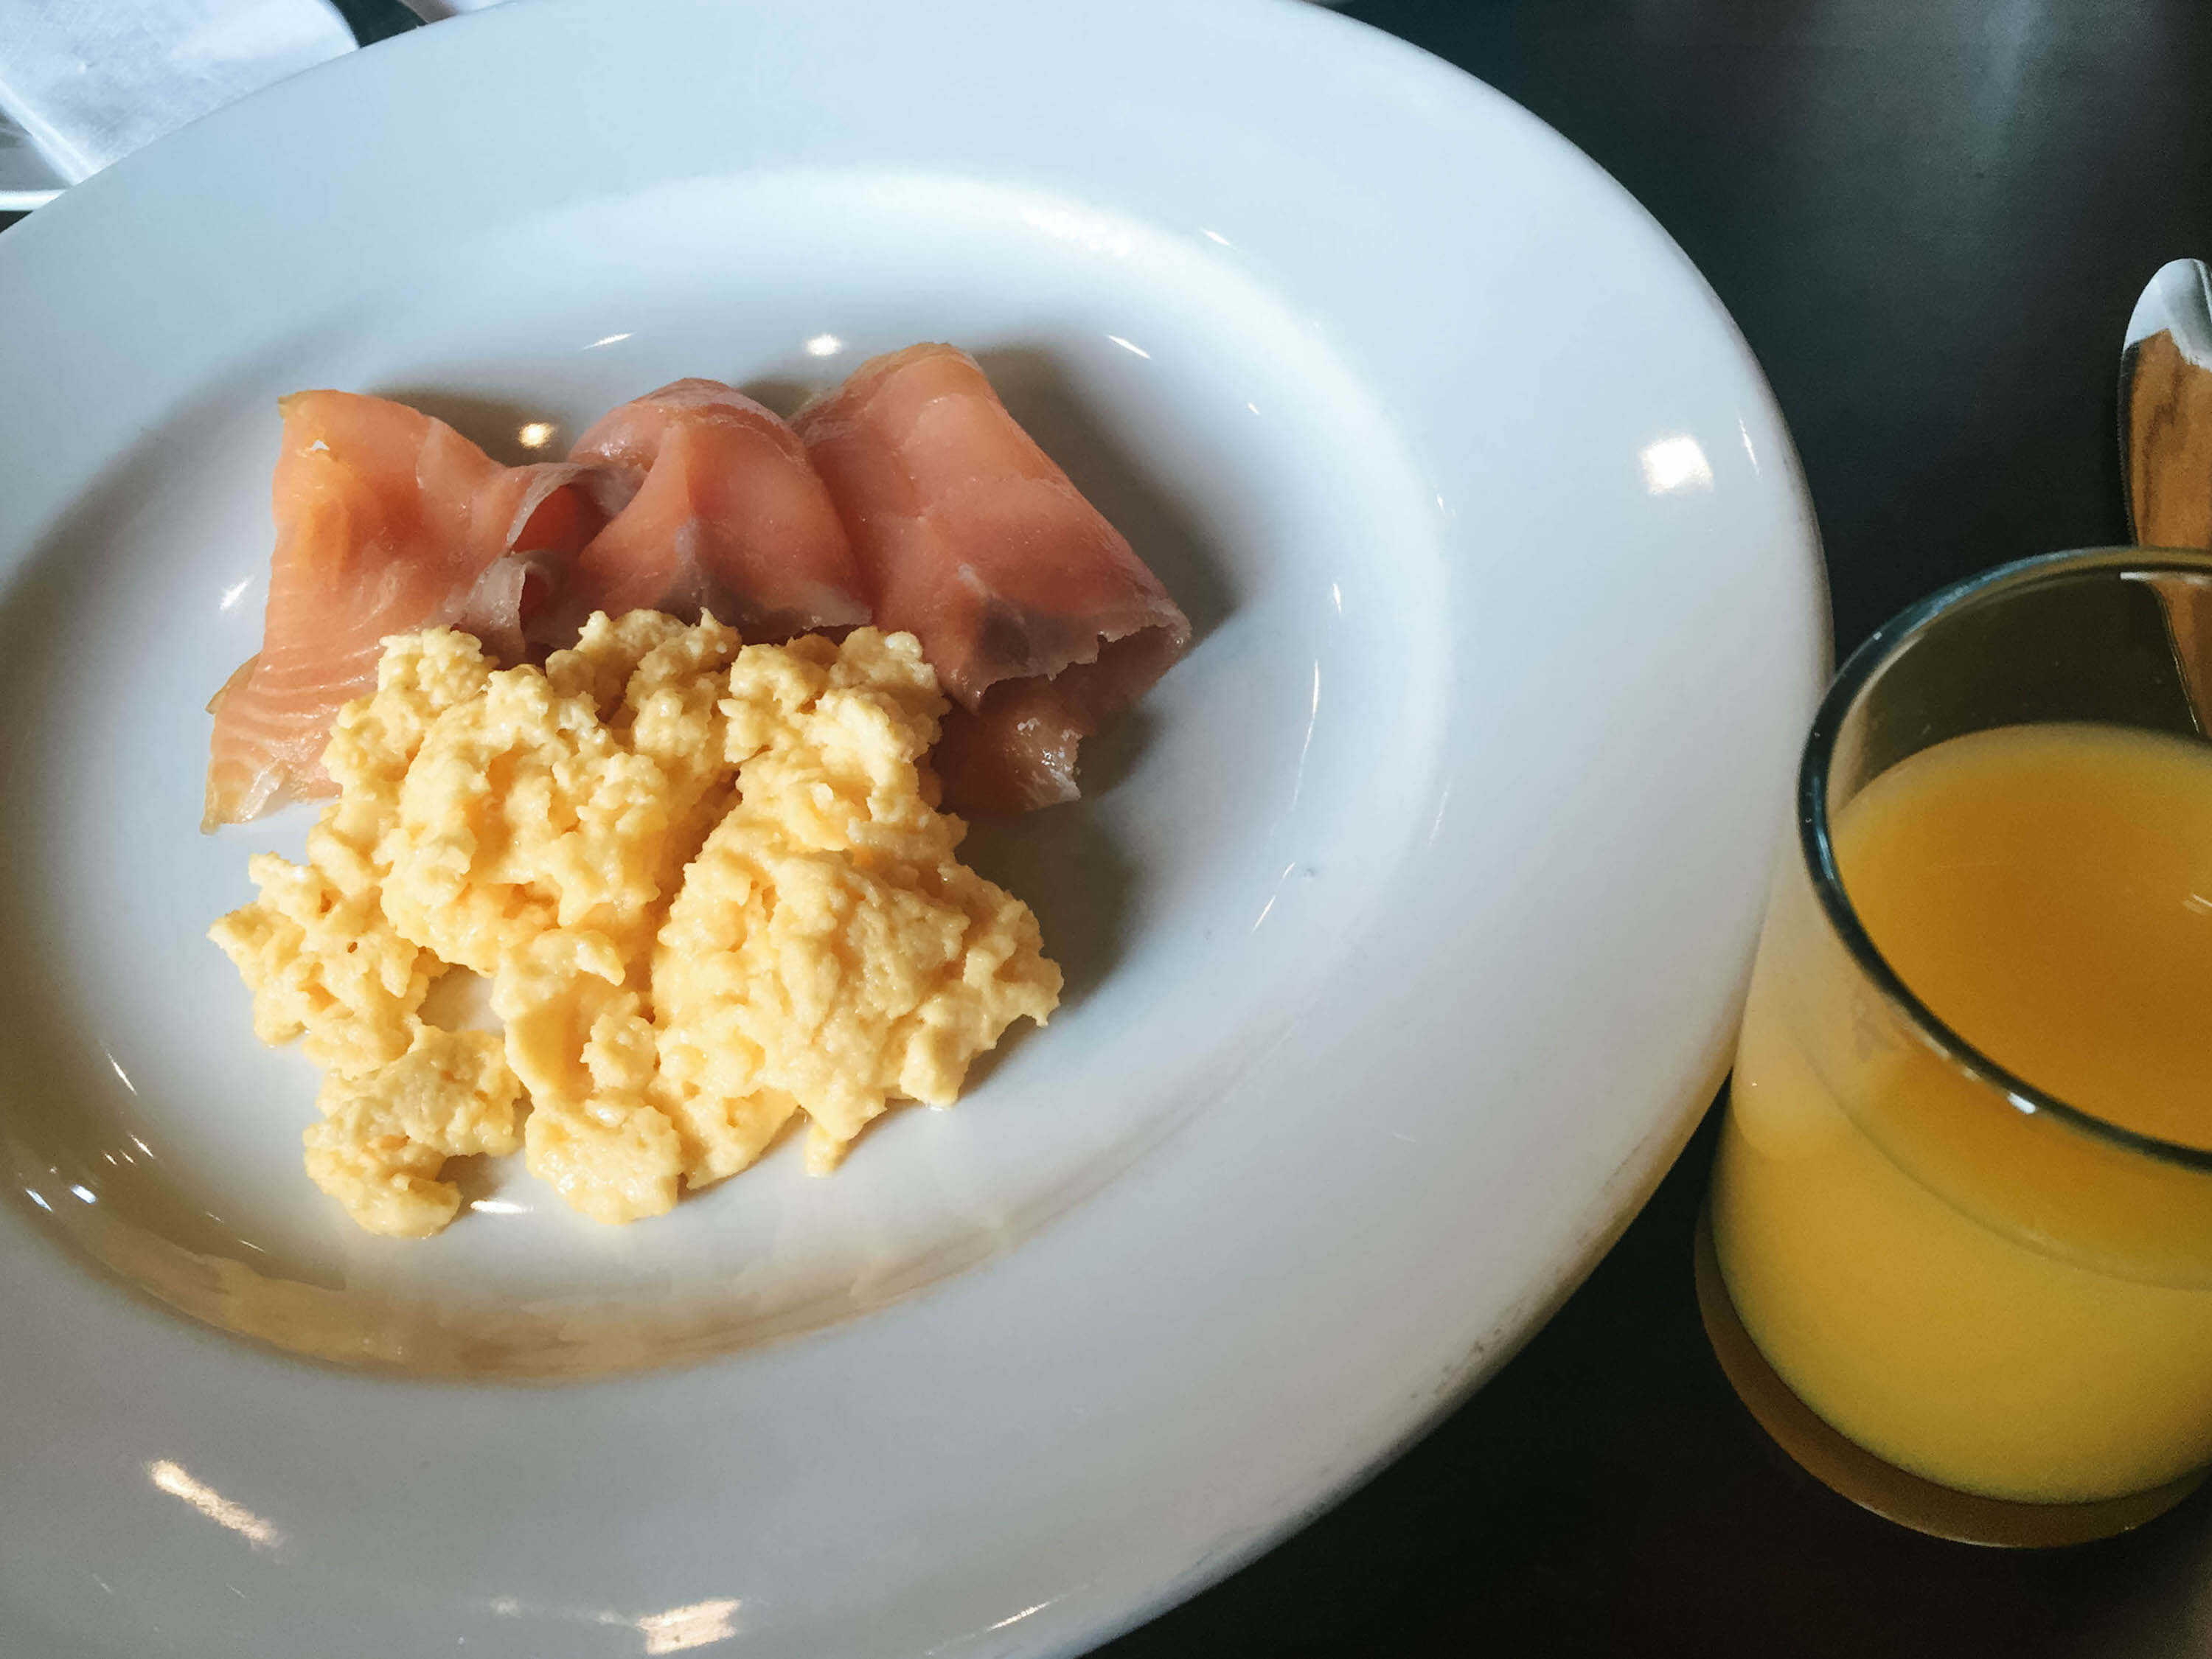 The Bonham Hotel Review - Salmon and Eggs plus Orange Juice Breakfast